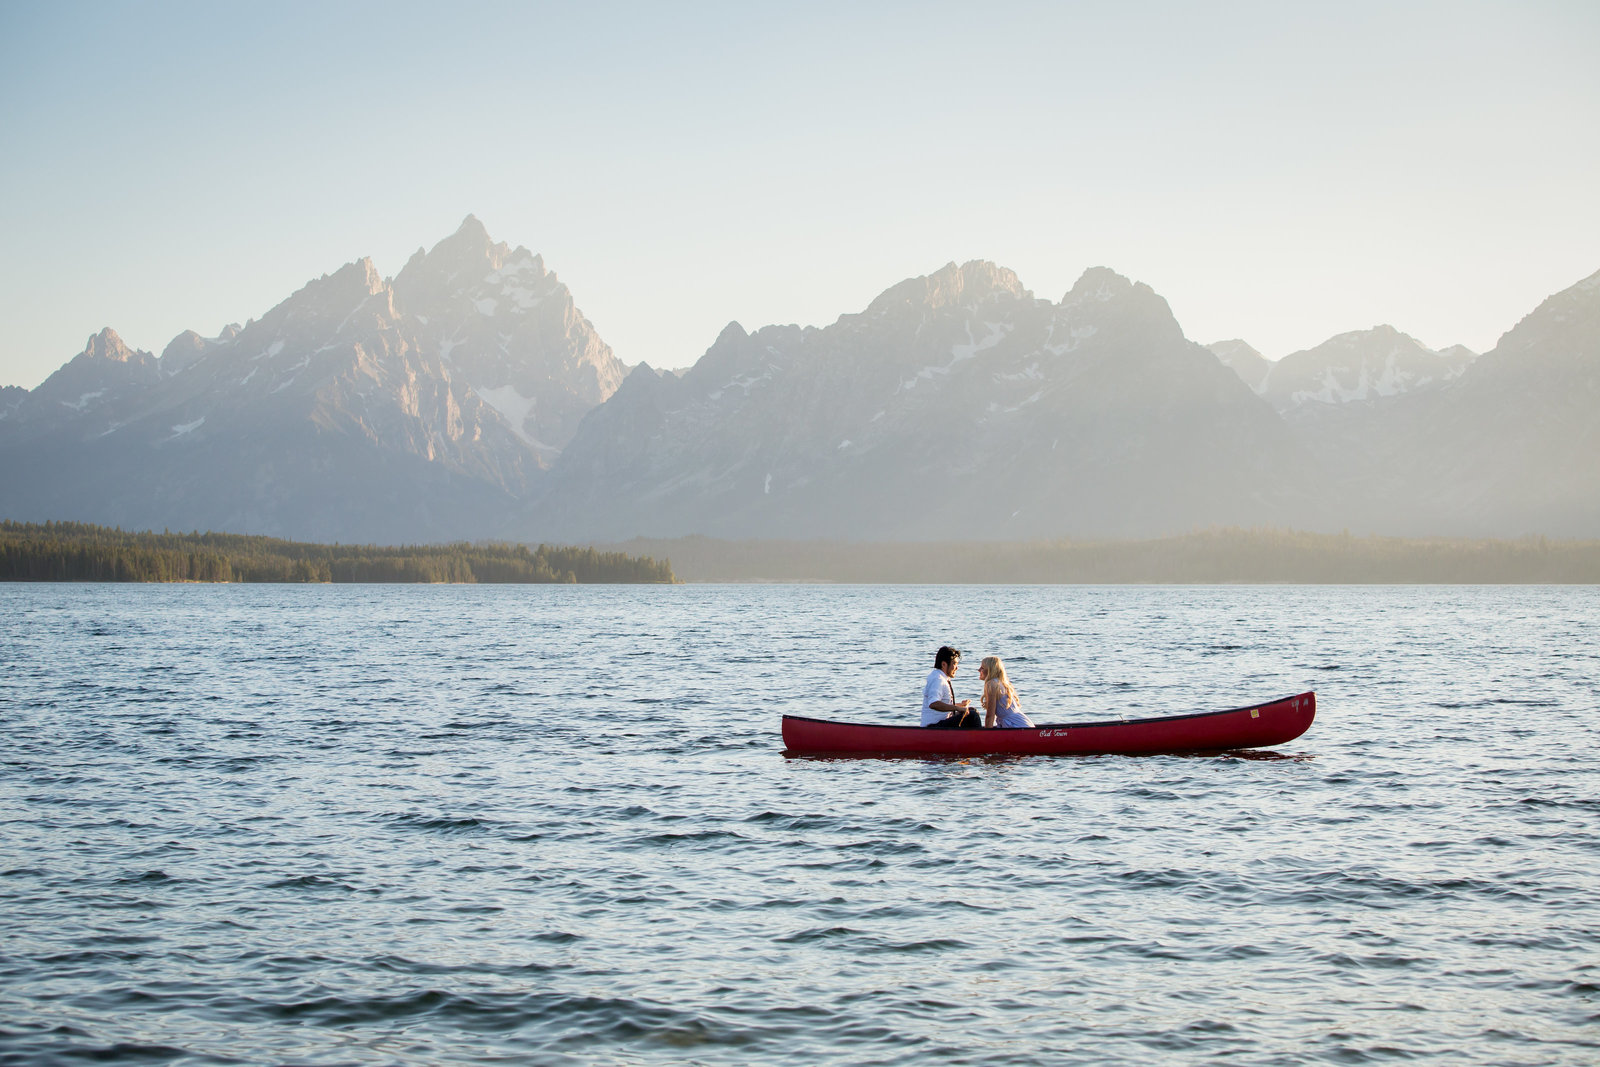 Engagement session in Canoe on Jackson Lake in Grand Teton National Park